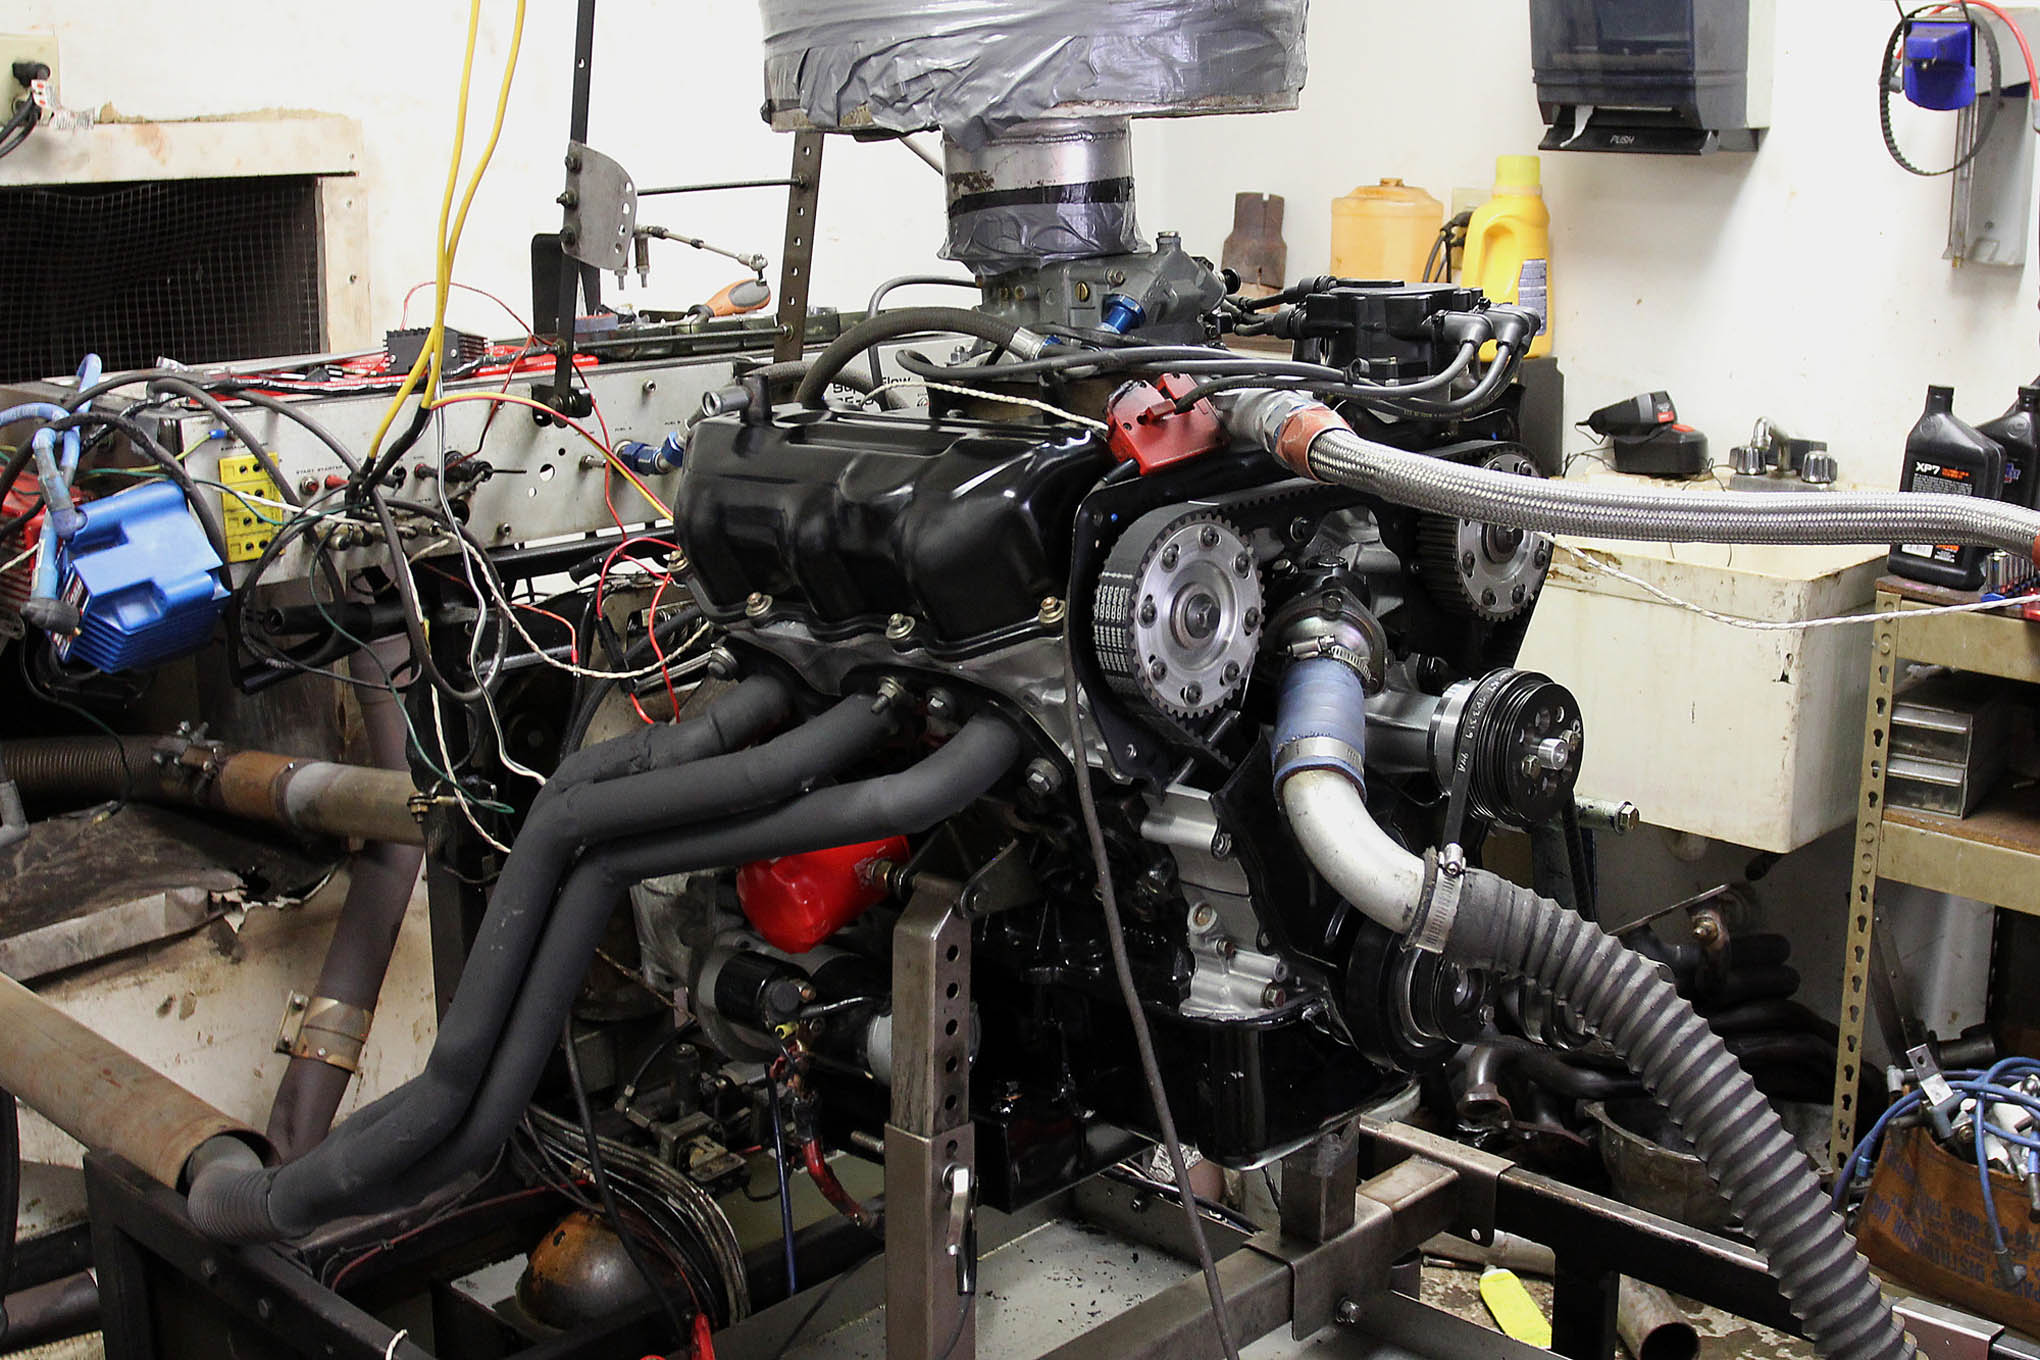 On the dyno the little V6 performed surprisingly well. Horsepower tops out at just under 200, but it has a broad torque curve and we're told the results make for a peppy race car on the track.